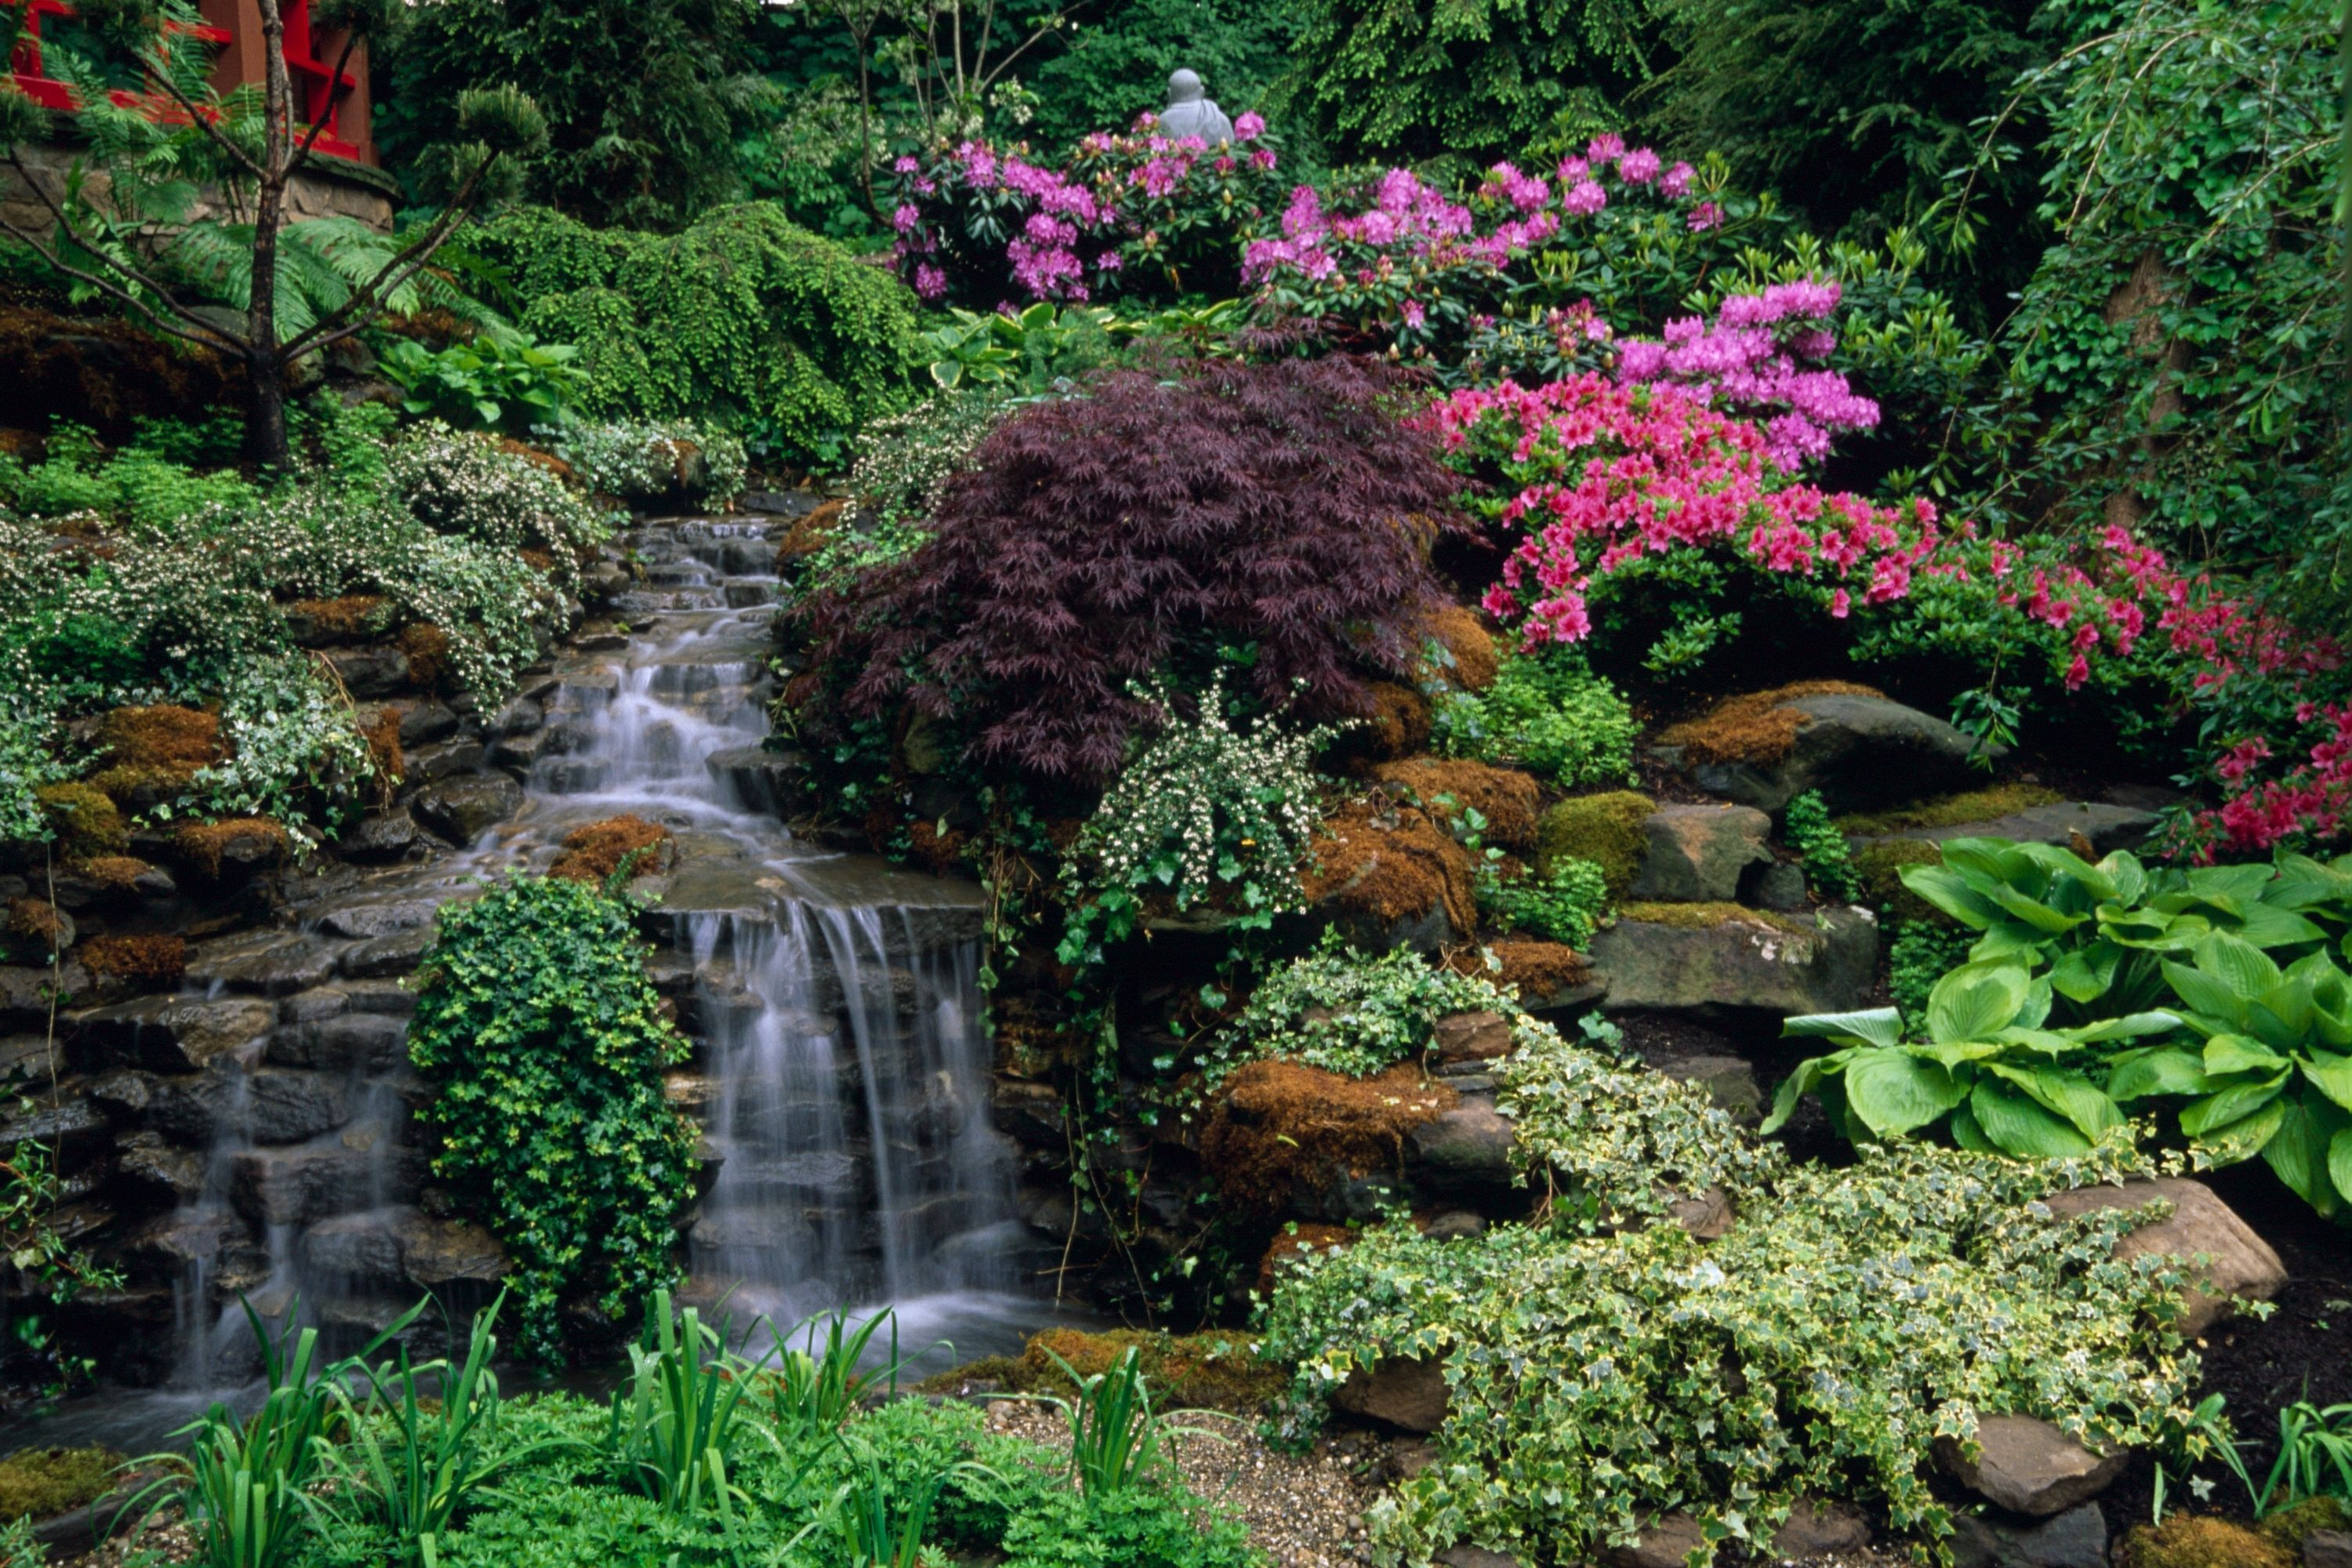 The Pattie Group 39 S Waterfall At The Cleveland Botanical Gardens A Lovely Place To Walk Around